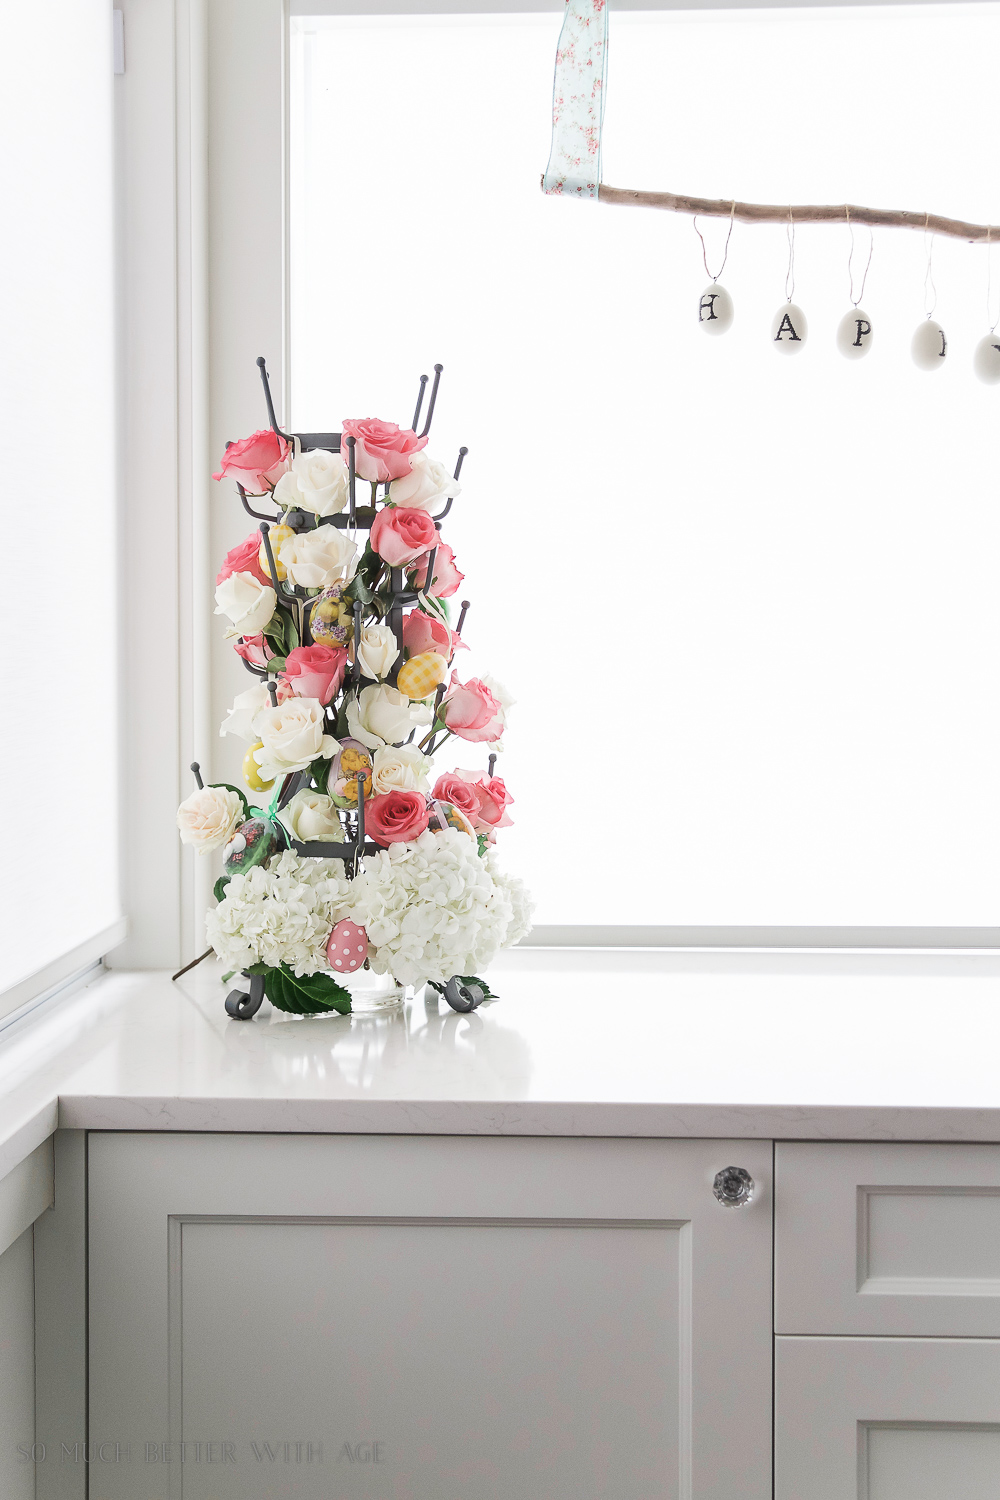 Spring Flower Home Tour + French Bottle Drying Rack Floral Centrepiece